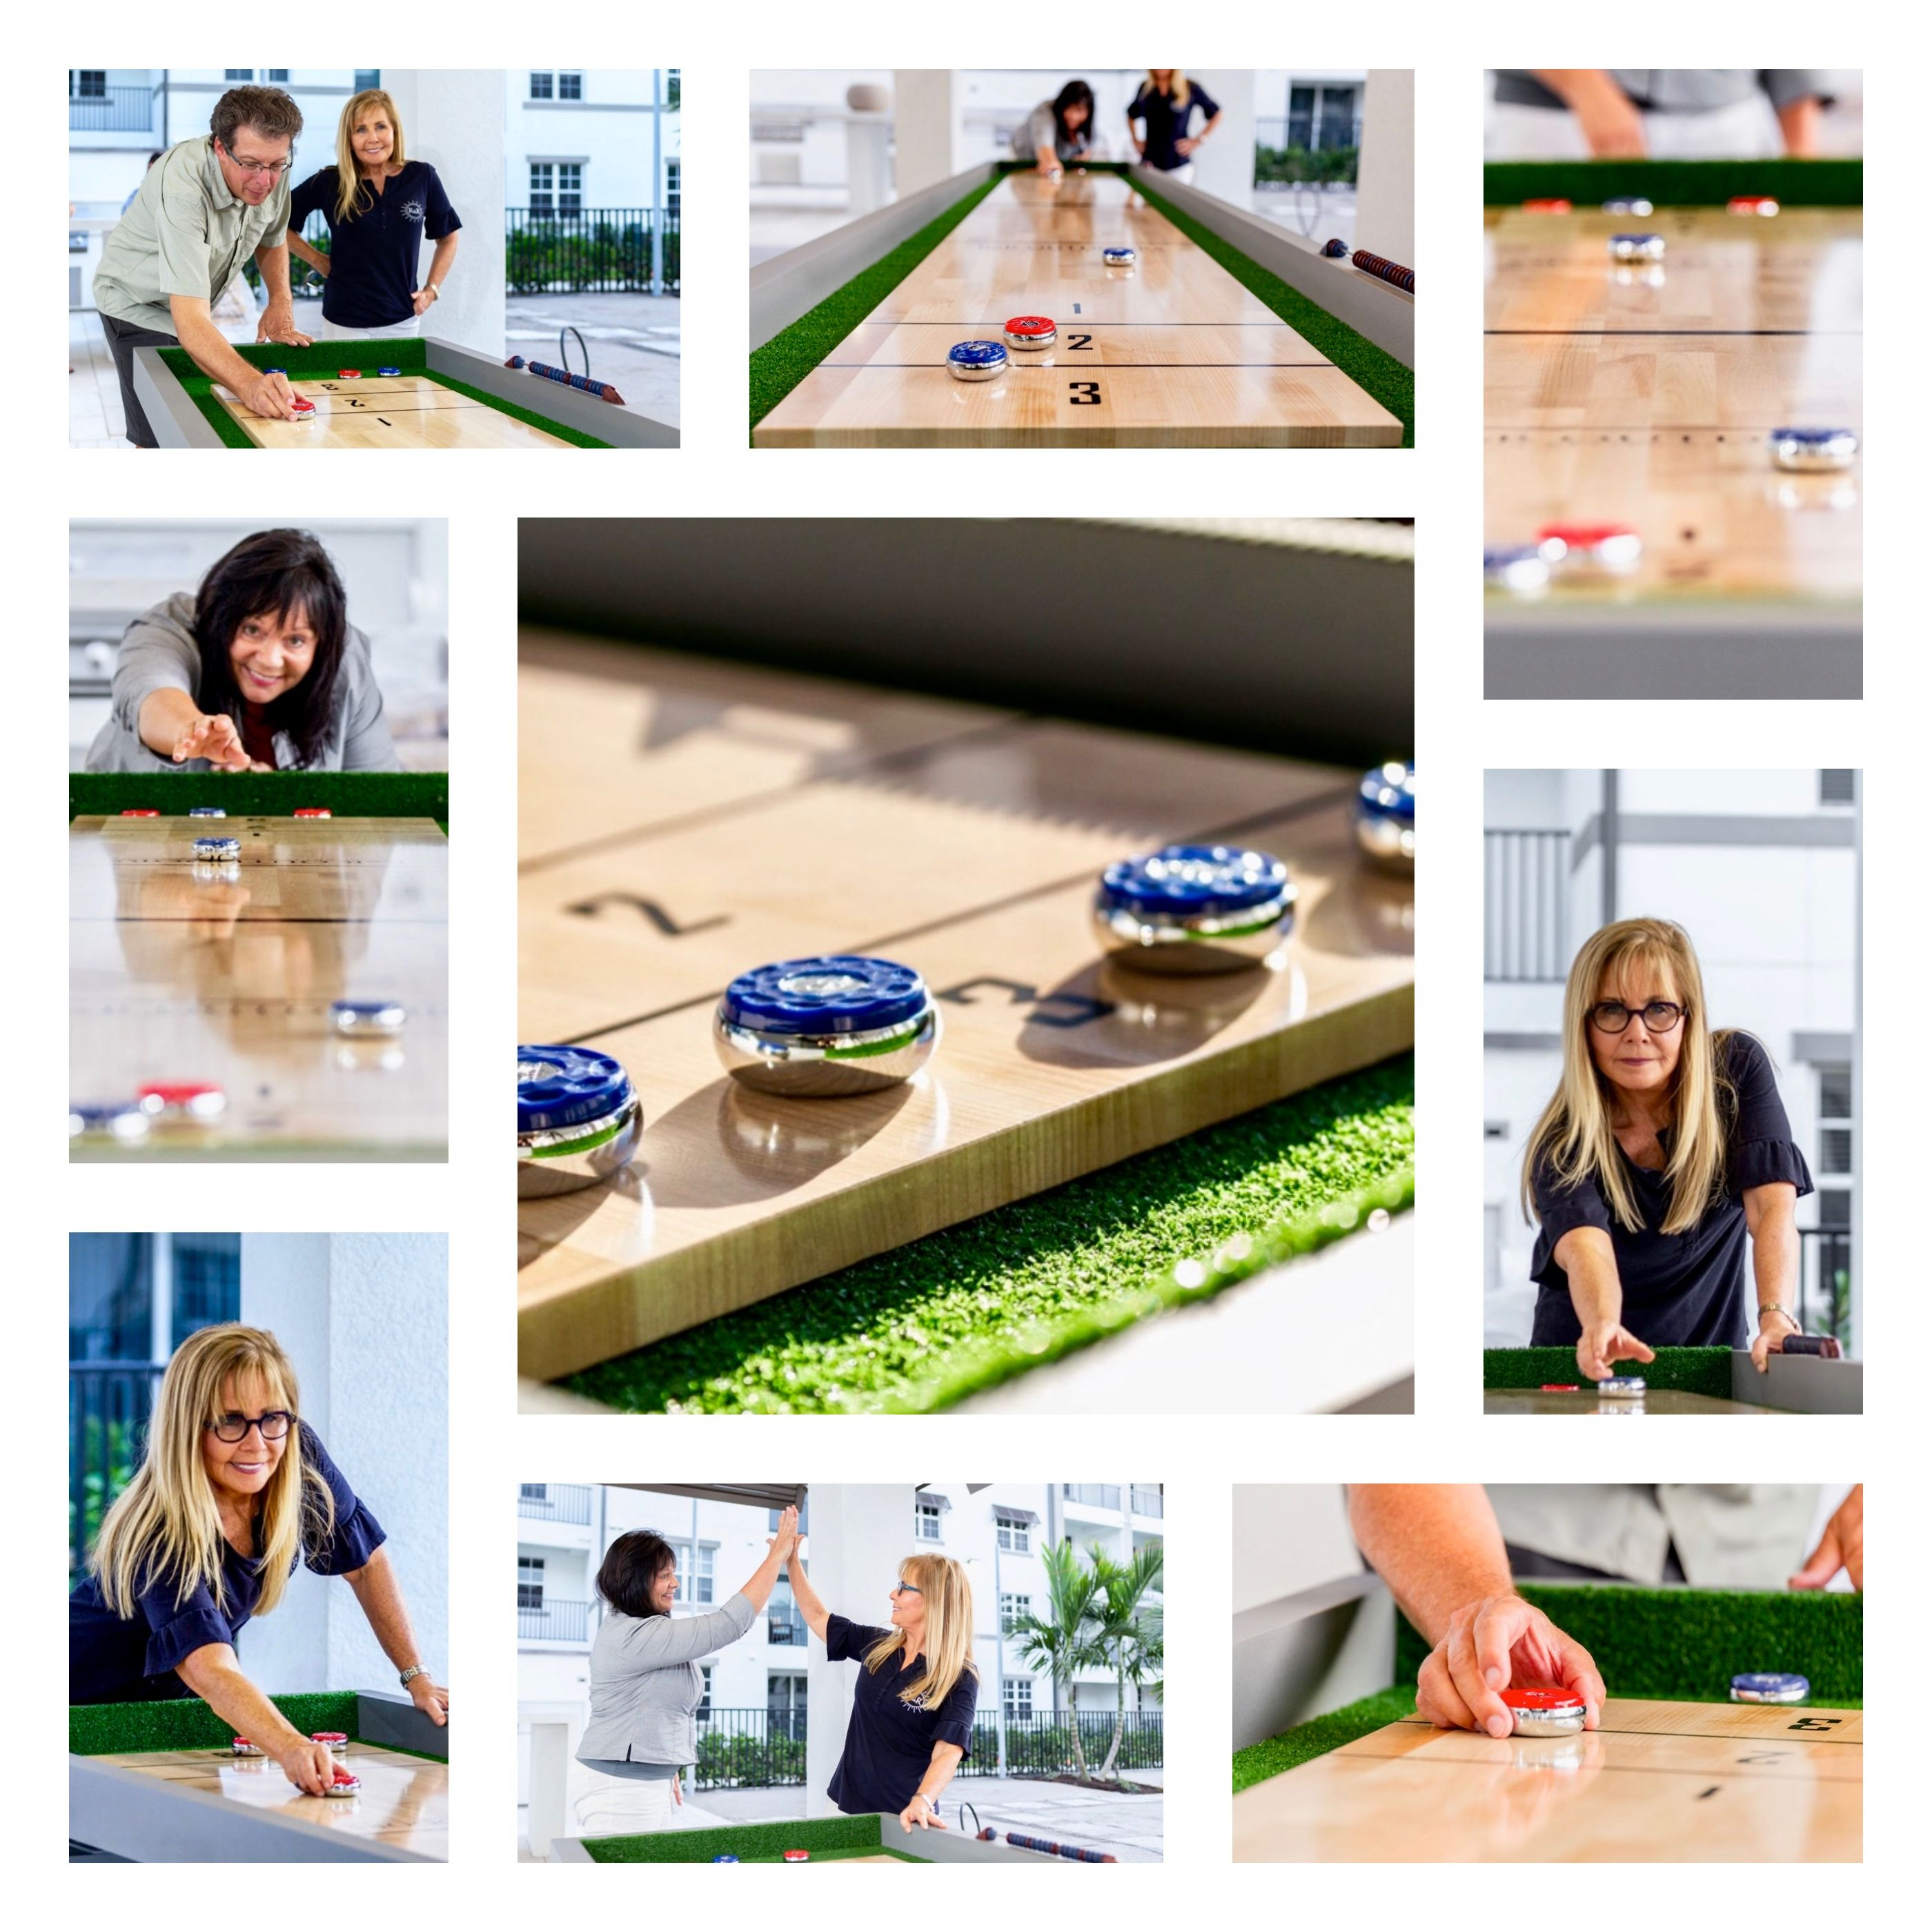 Shuffleboard is a fun and engaging game that is easy